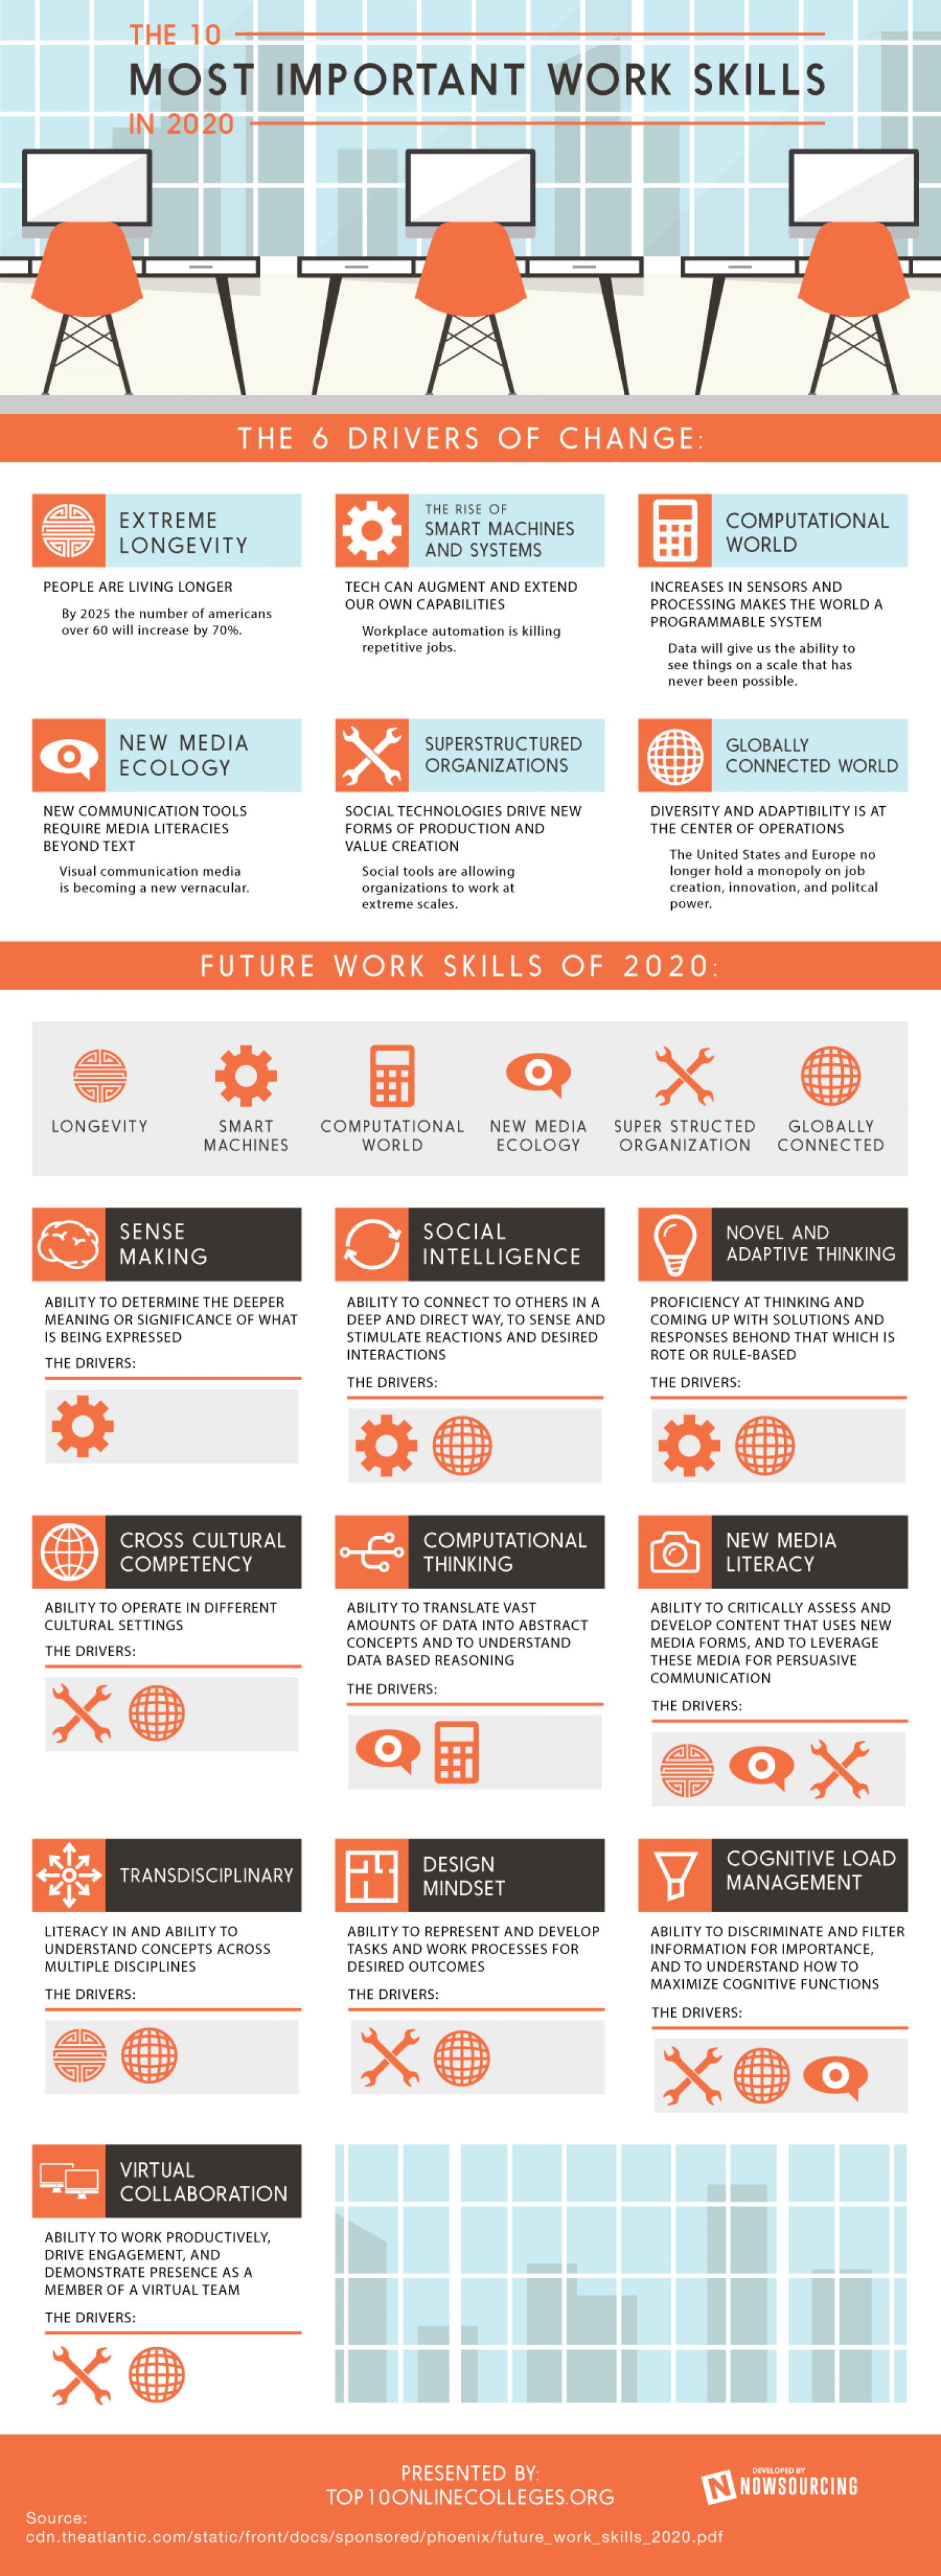 The 10 Most Important Work Skills in 2020 Infographic